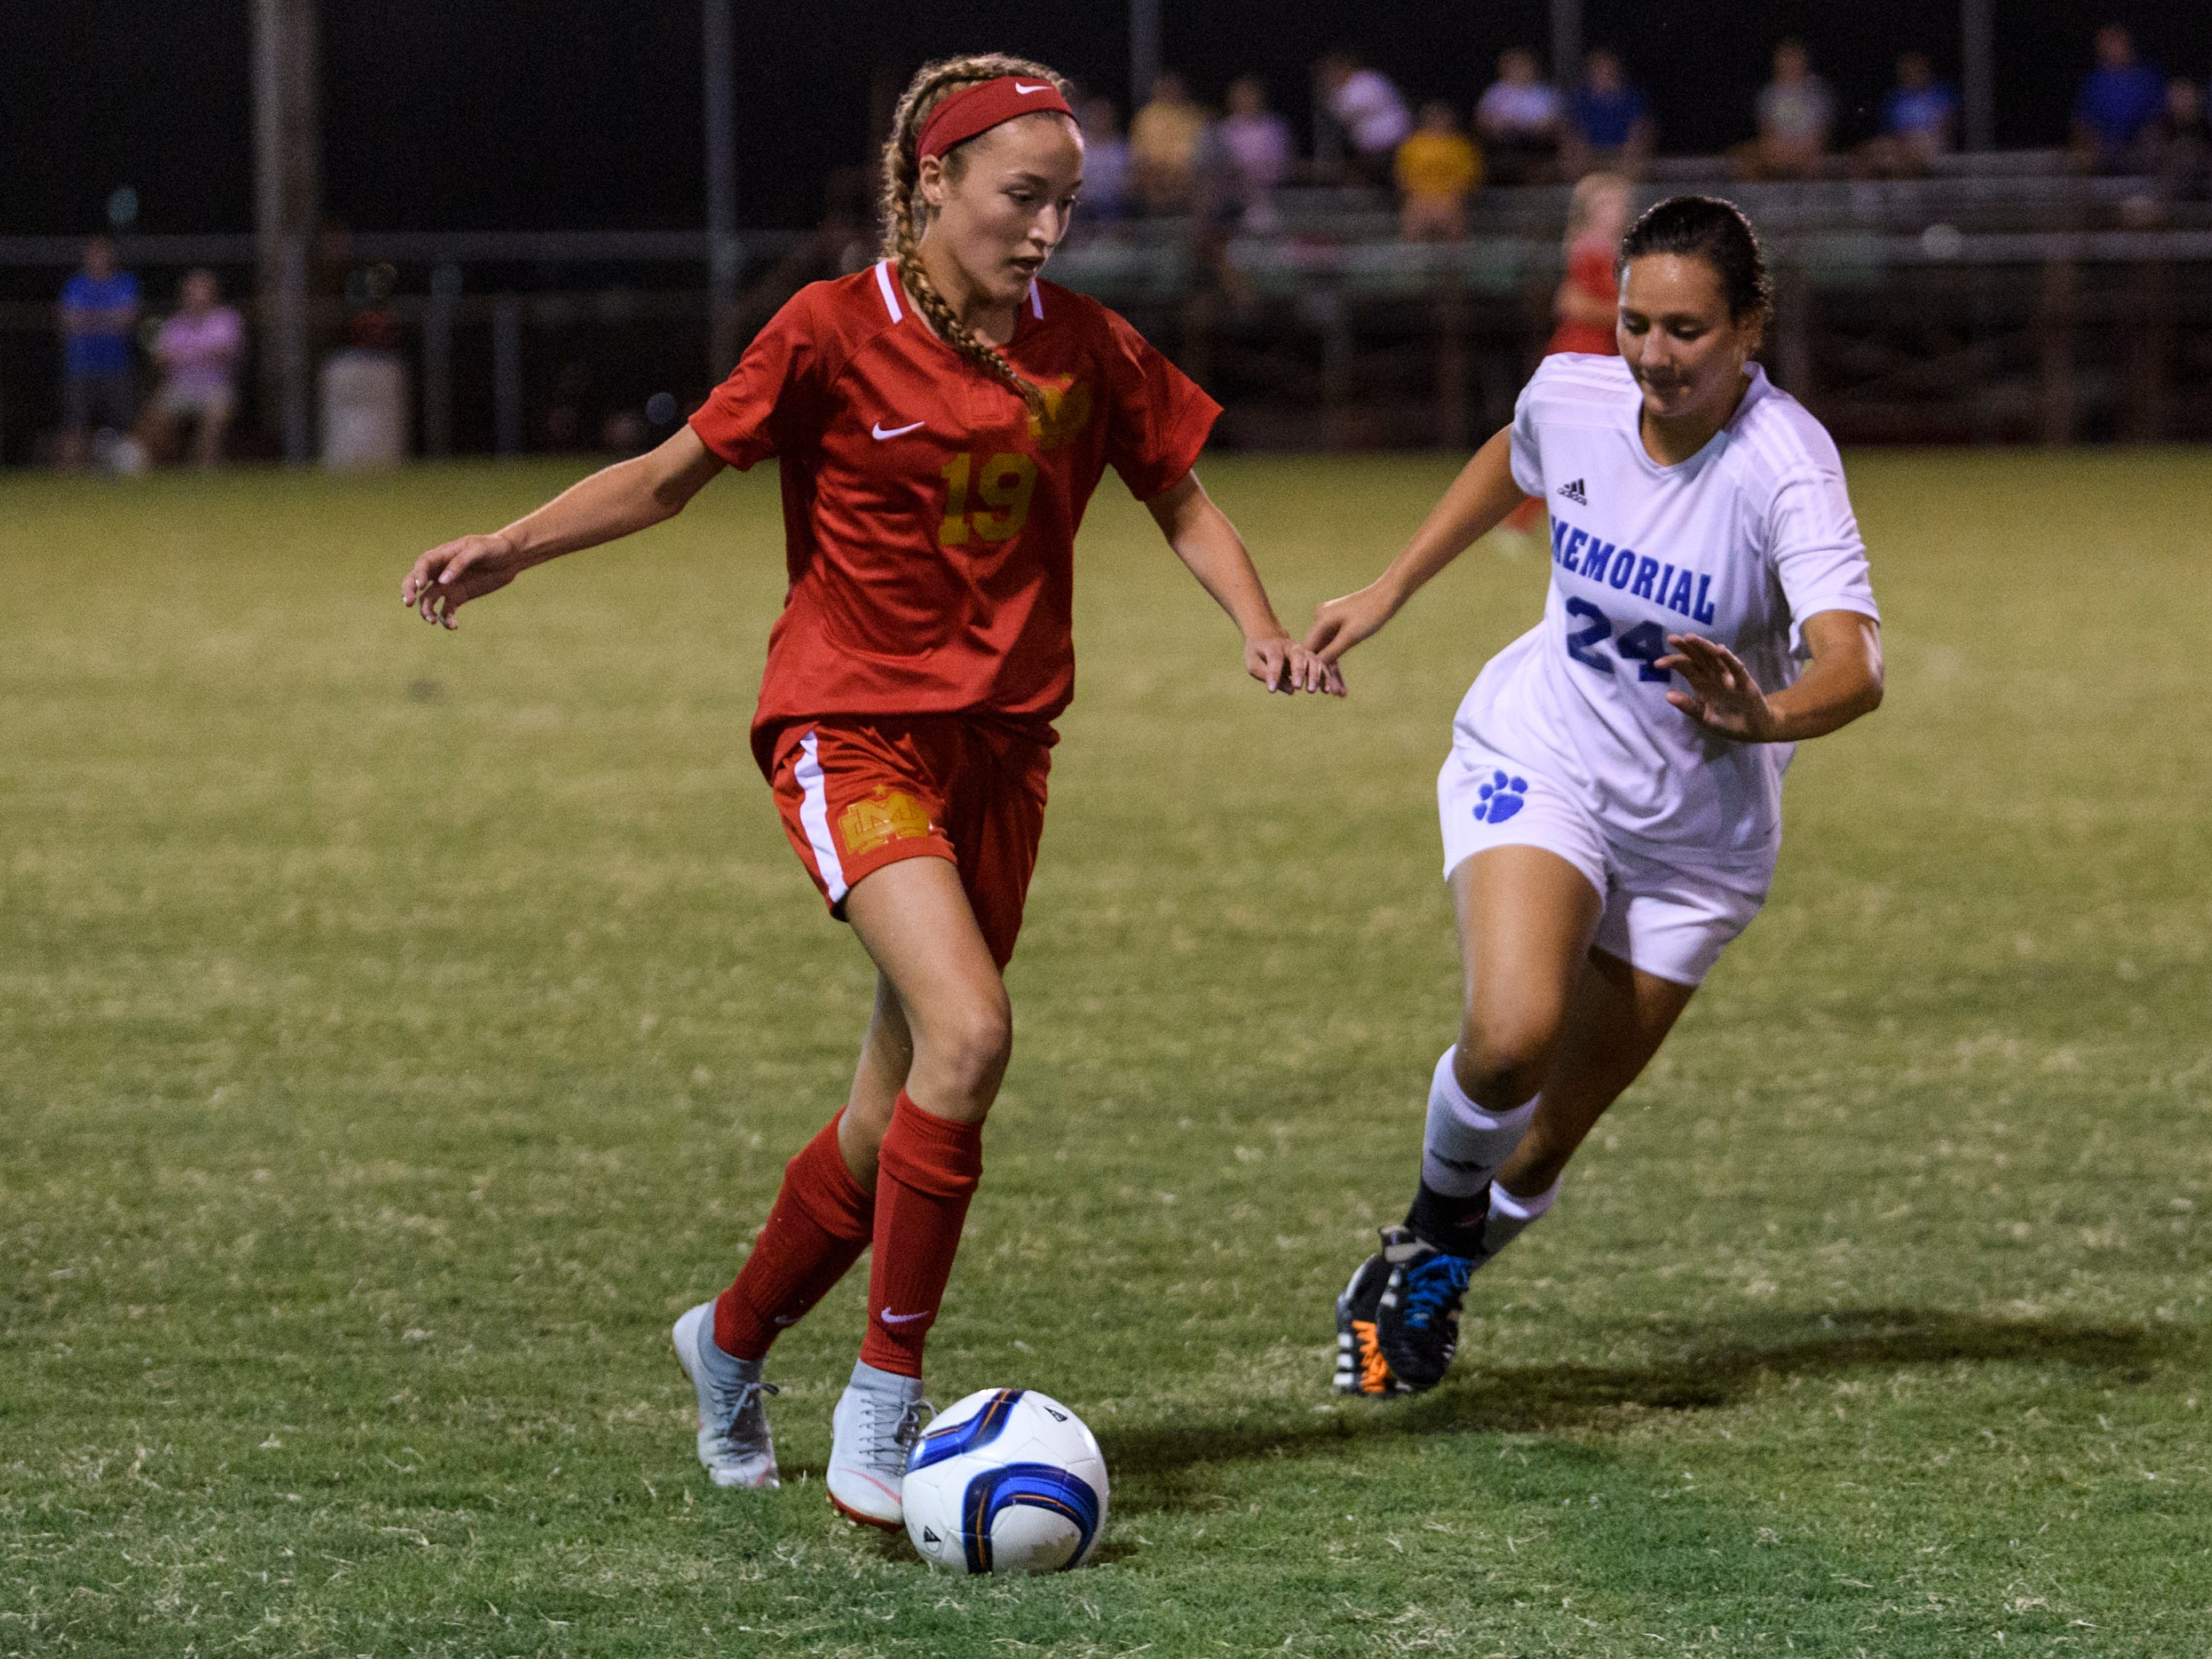 Mater Dei's Miranda Nosko (19) drives the ball down the field as Memorial's Olivia Schitter (24) attempts to make a steal at the EVSC Soccer Fields in Evansville, Ind., Monday, Aug. 20, 2018. The Tigers defeated the Wildcats 4-0.